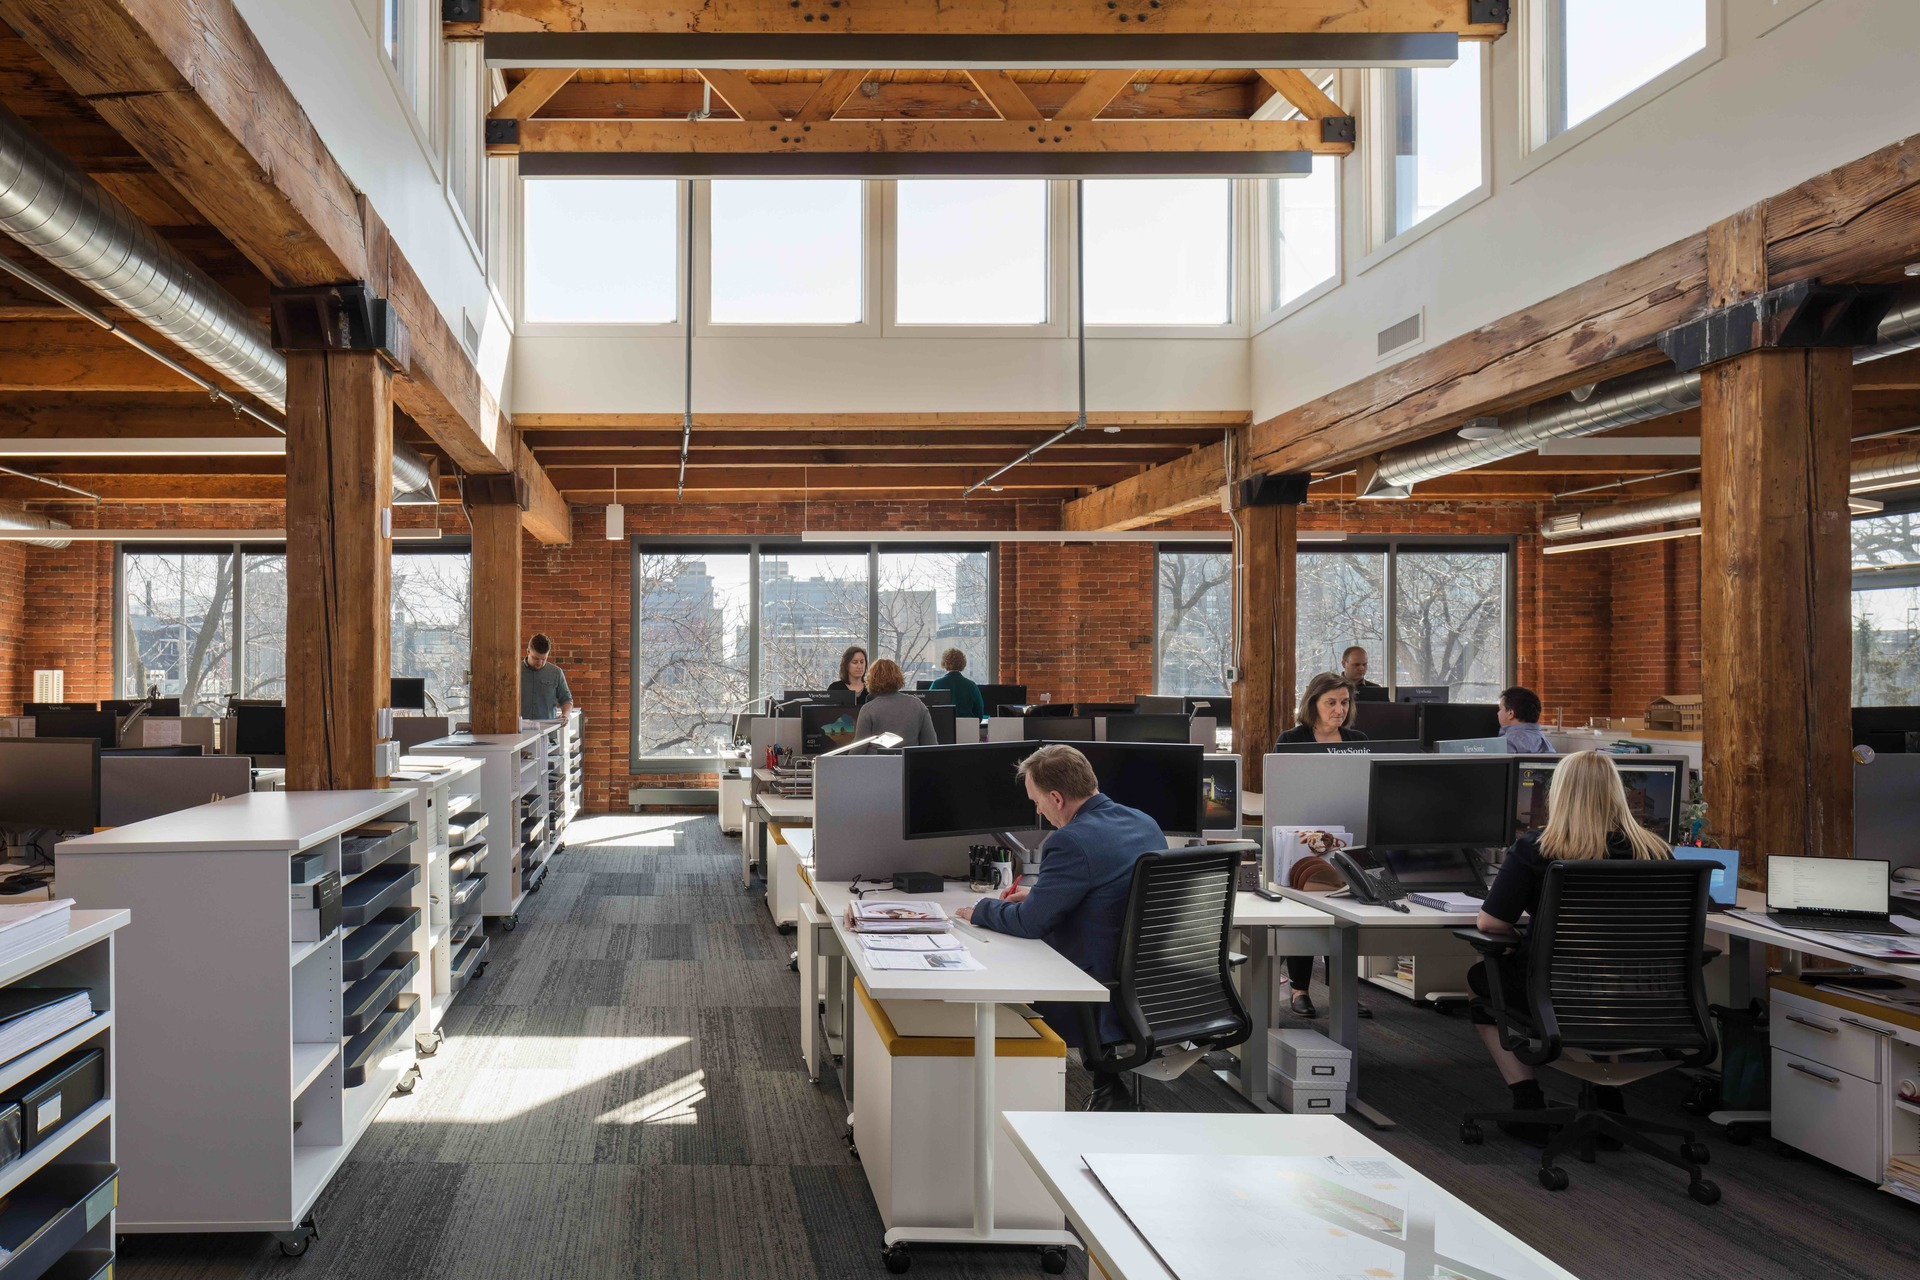 Outdoor lighting fills the open workspace providing a healthy work environment to everyone. Natural finishes also bring a warm, comfortable atmosphere to the interior.